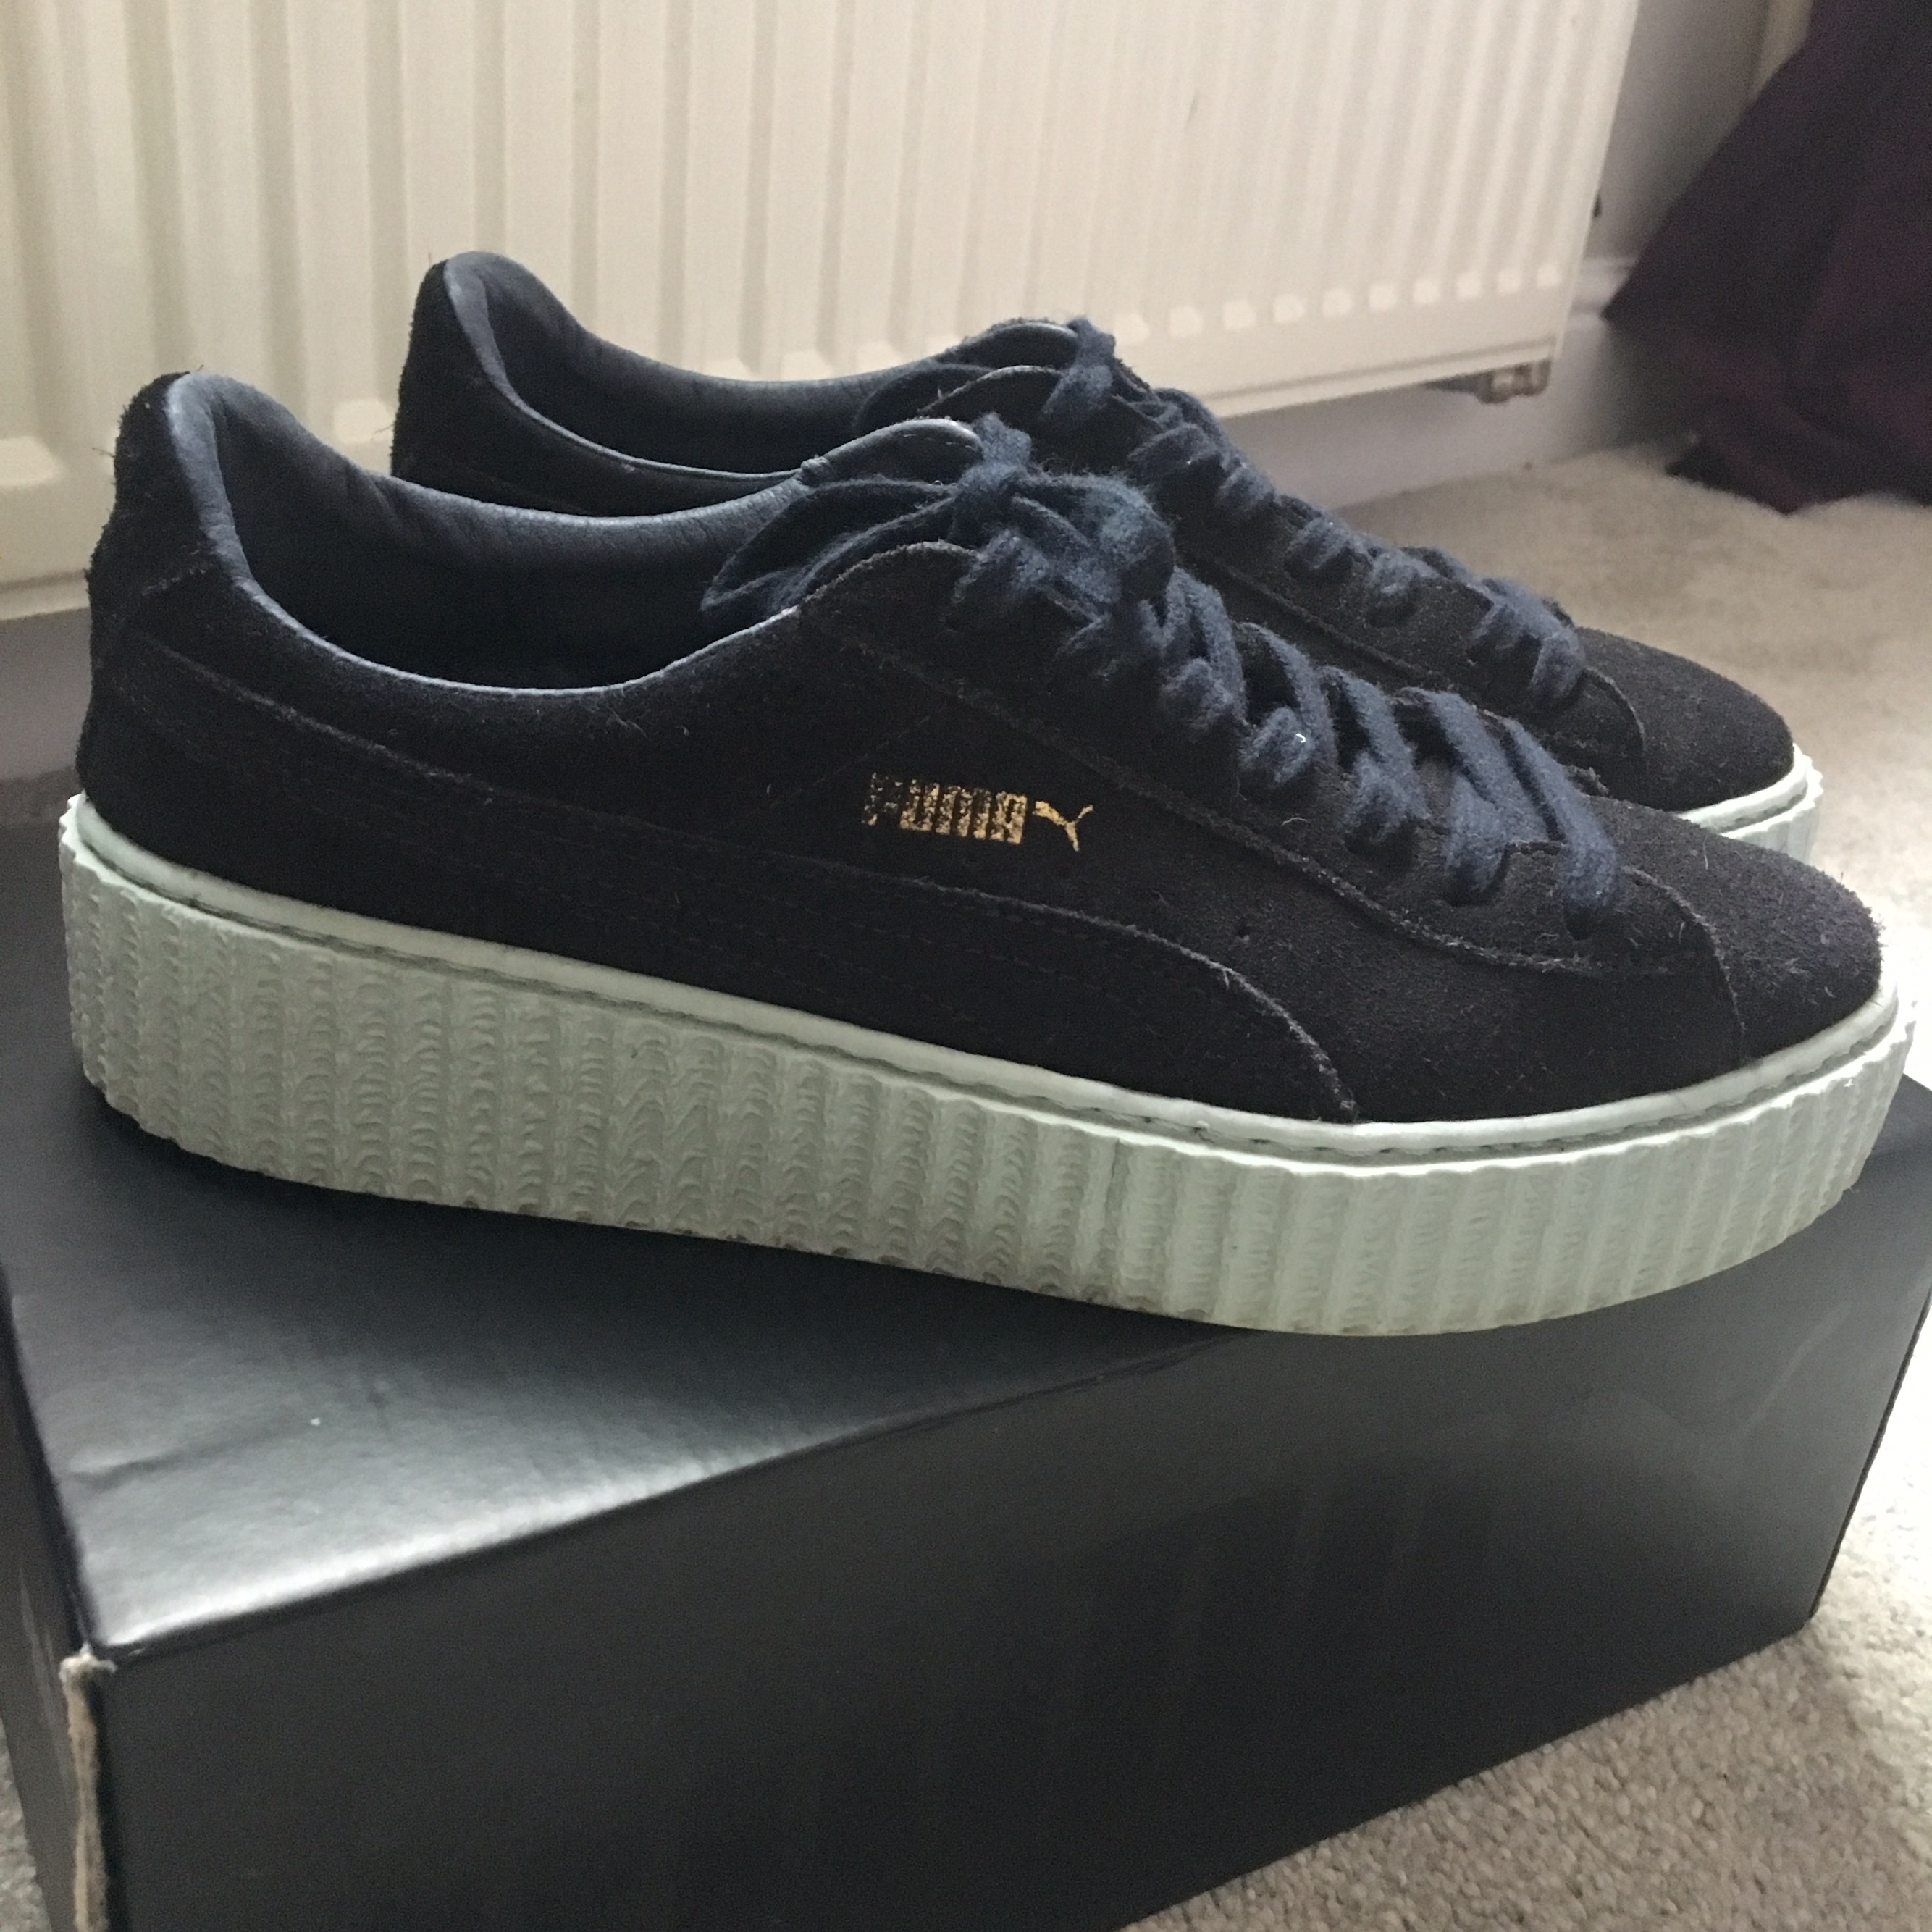 reputable site d5e7d 5a532 Fenty Puma creepers size 7 peacoat blue, bought on... - Depop